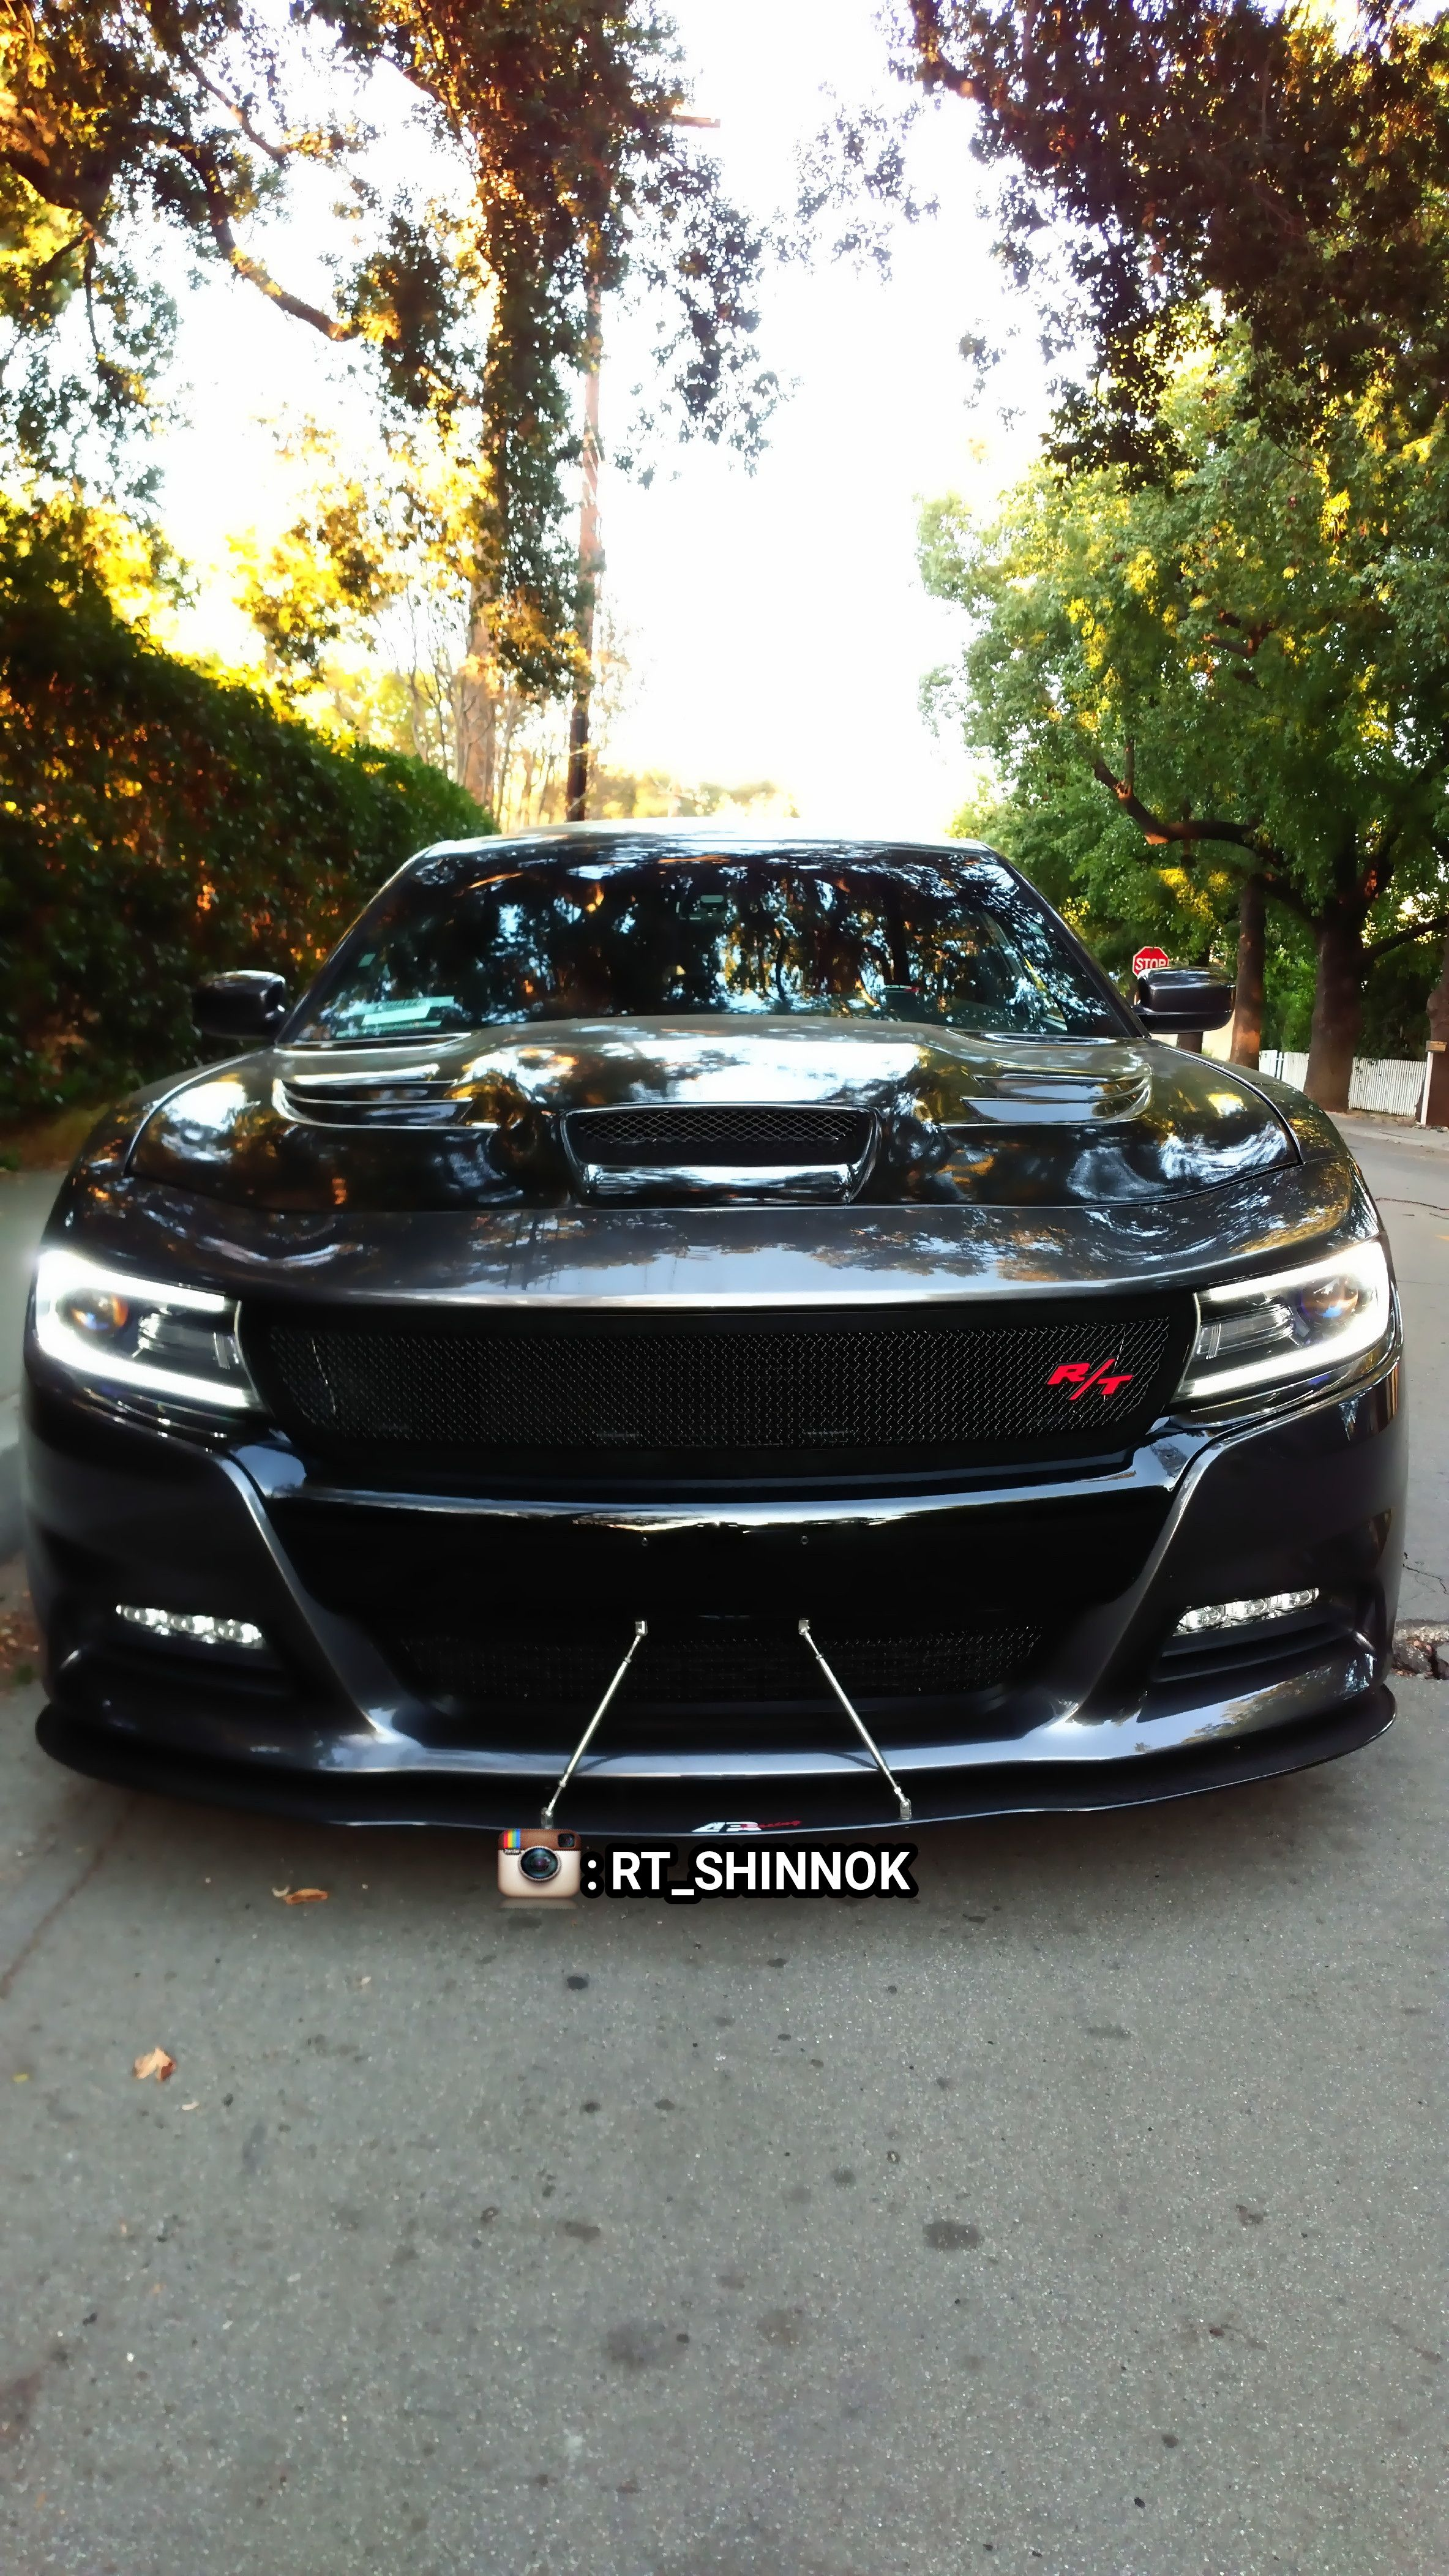 Yes I M Back Again One More Mod Added Front Grille Mod No Longer Dodge Crosshair Dodge Challenger C Dodge Charger Sxt Dodge Charger Hellcat Dodge Charger